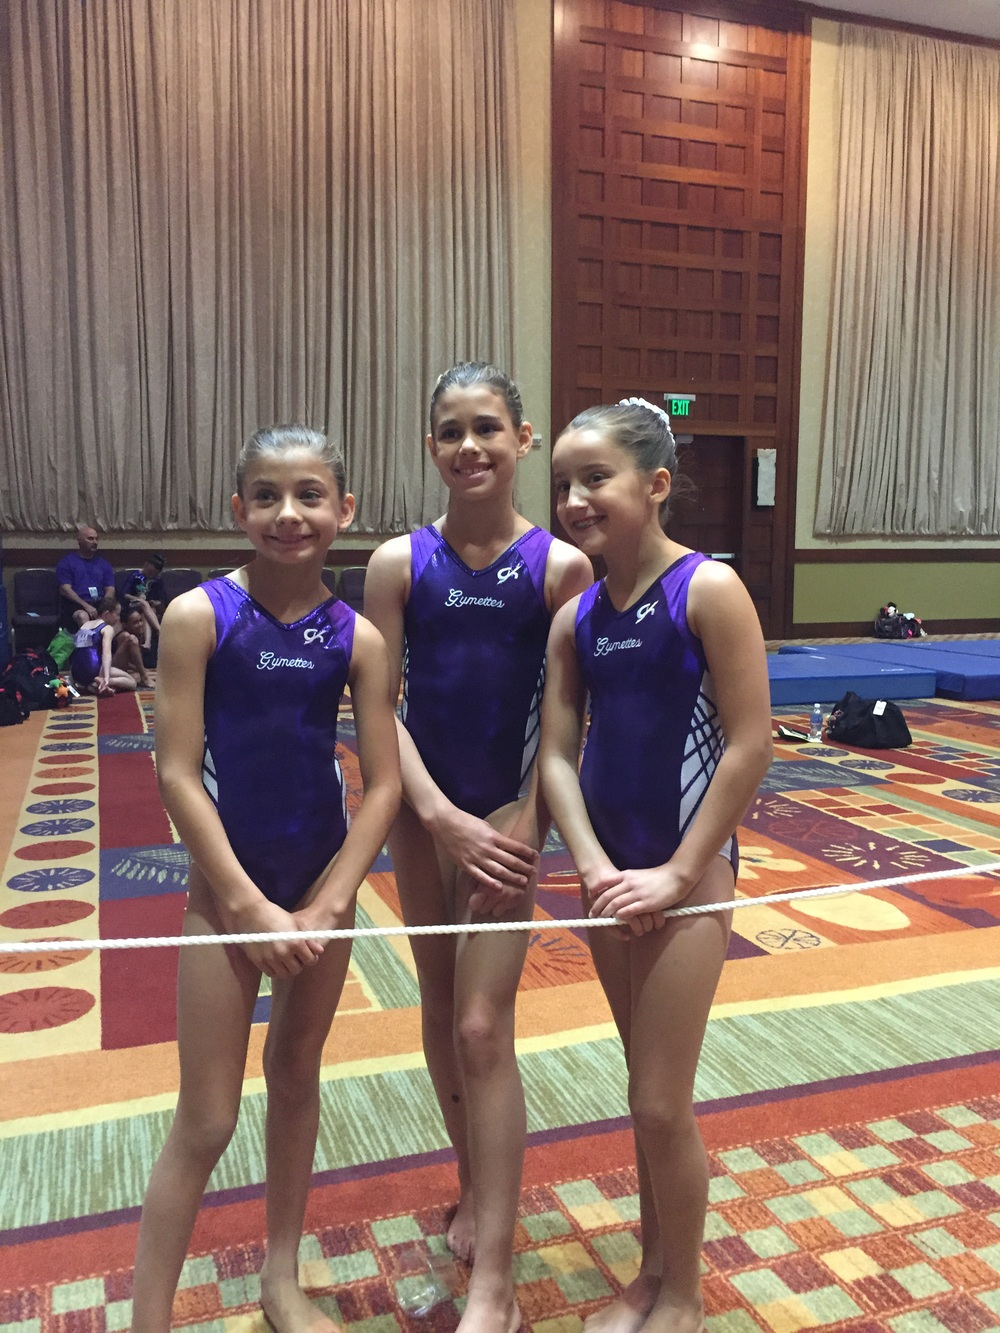 Ashton and her teammates at Nationals for gymnastics.